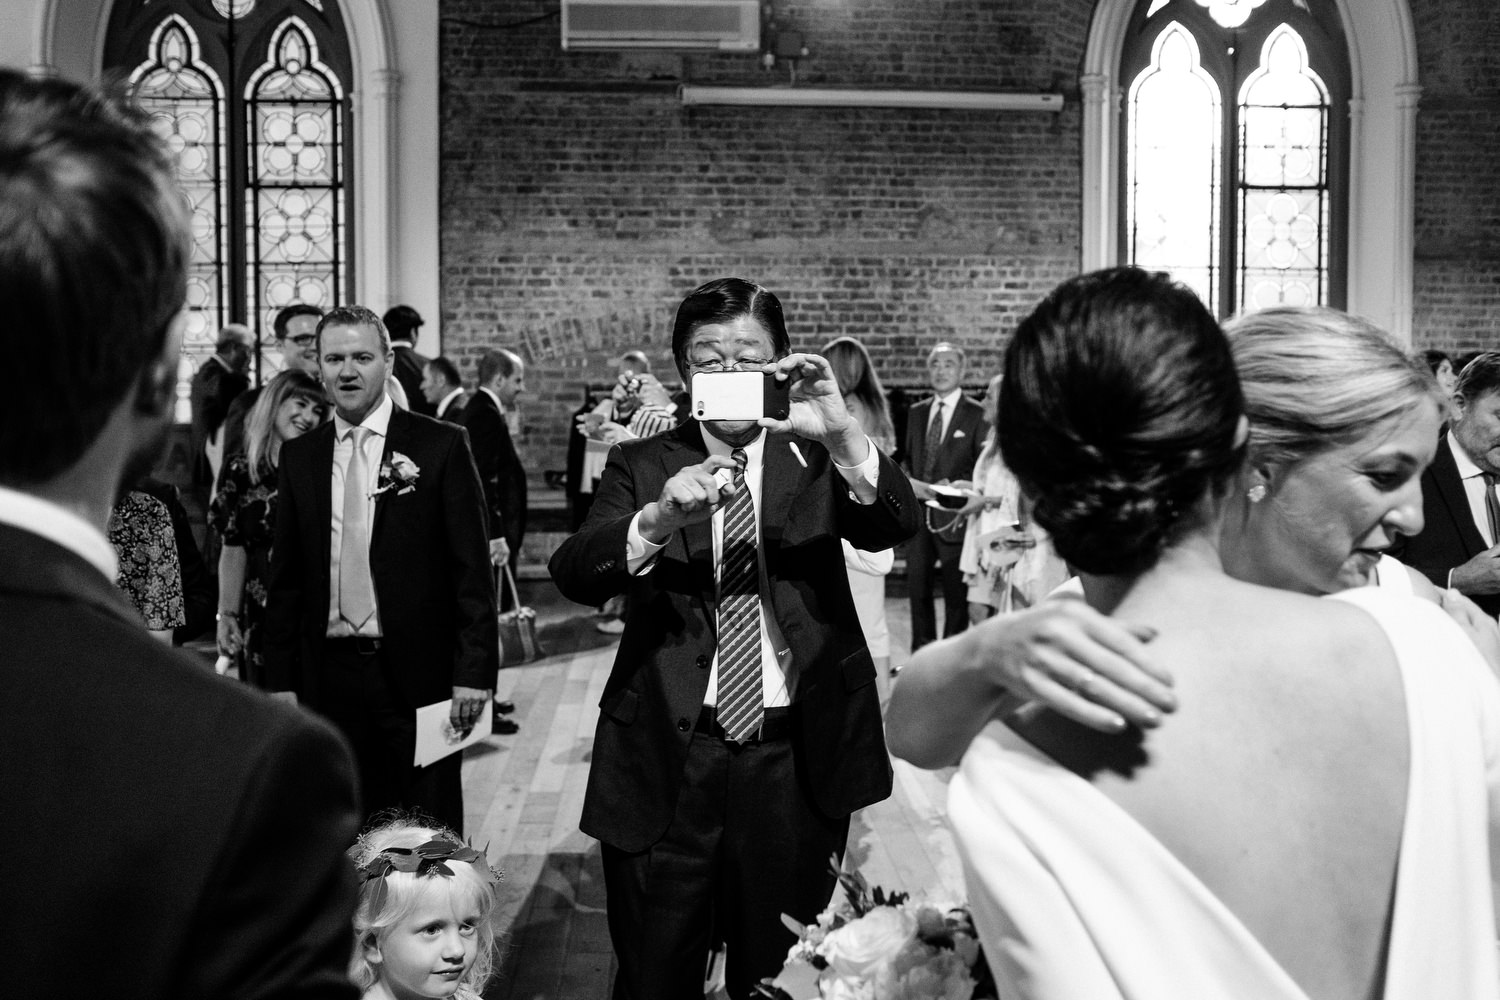 dmp0316_dublin_alley_photography_david_mcclelland_ceremony_humanist_documentary_theatre_smock_wedding_photographer